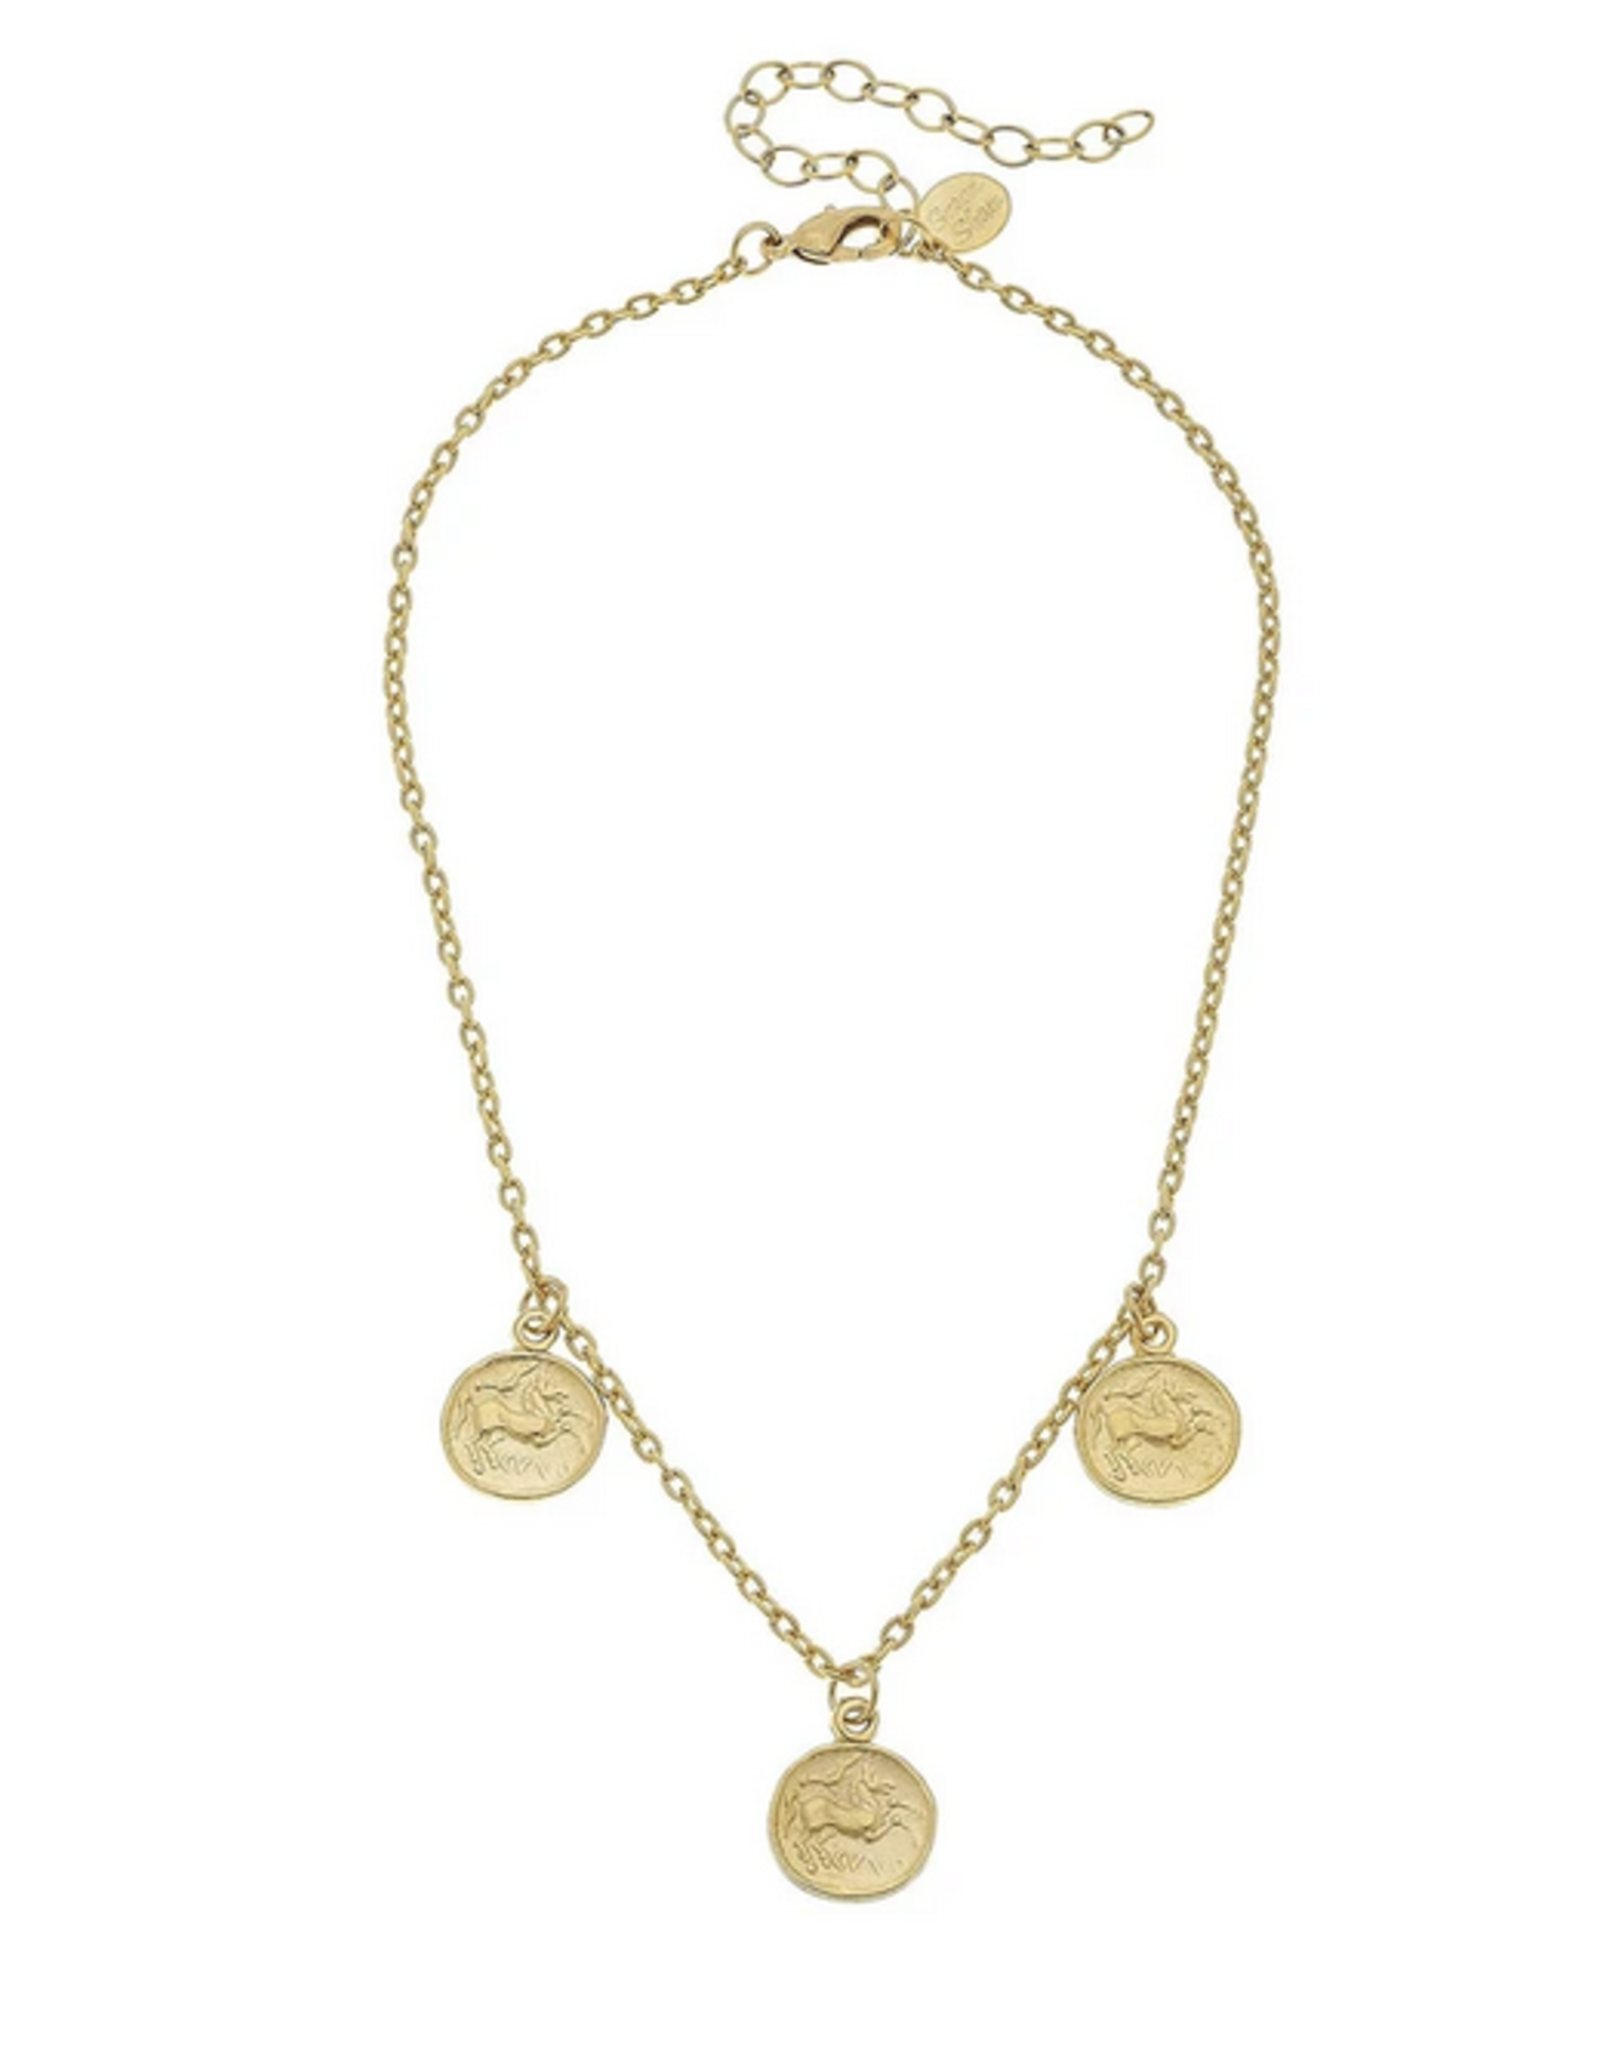 Susan Shaw Gold Coins on Chain Necklace